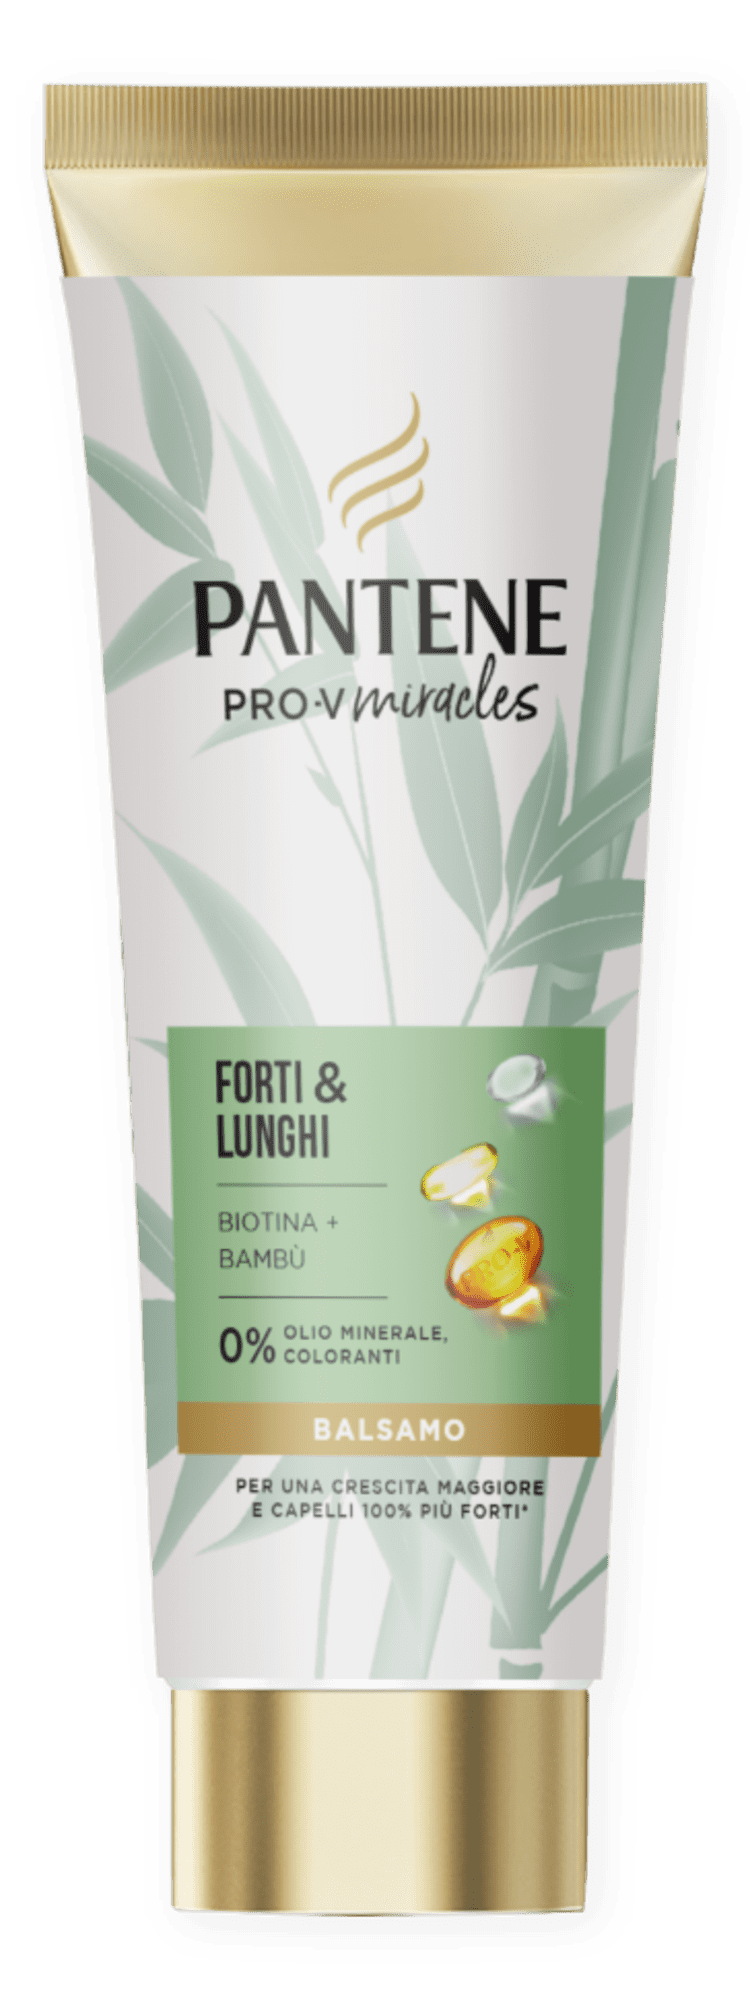 Pantene Pro-V Miracles Balsamo Forti&Lunghi